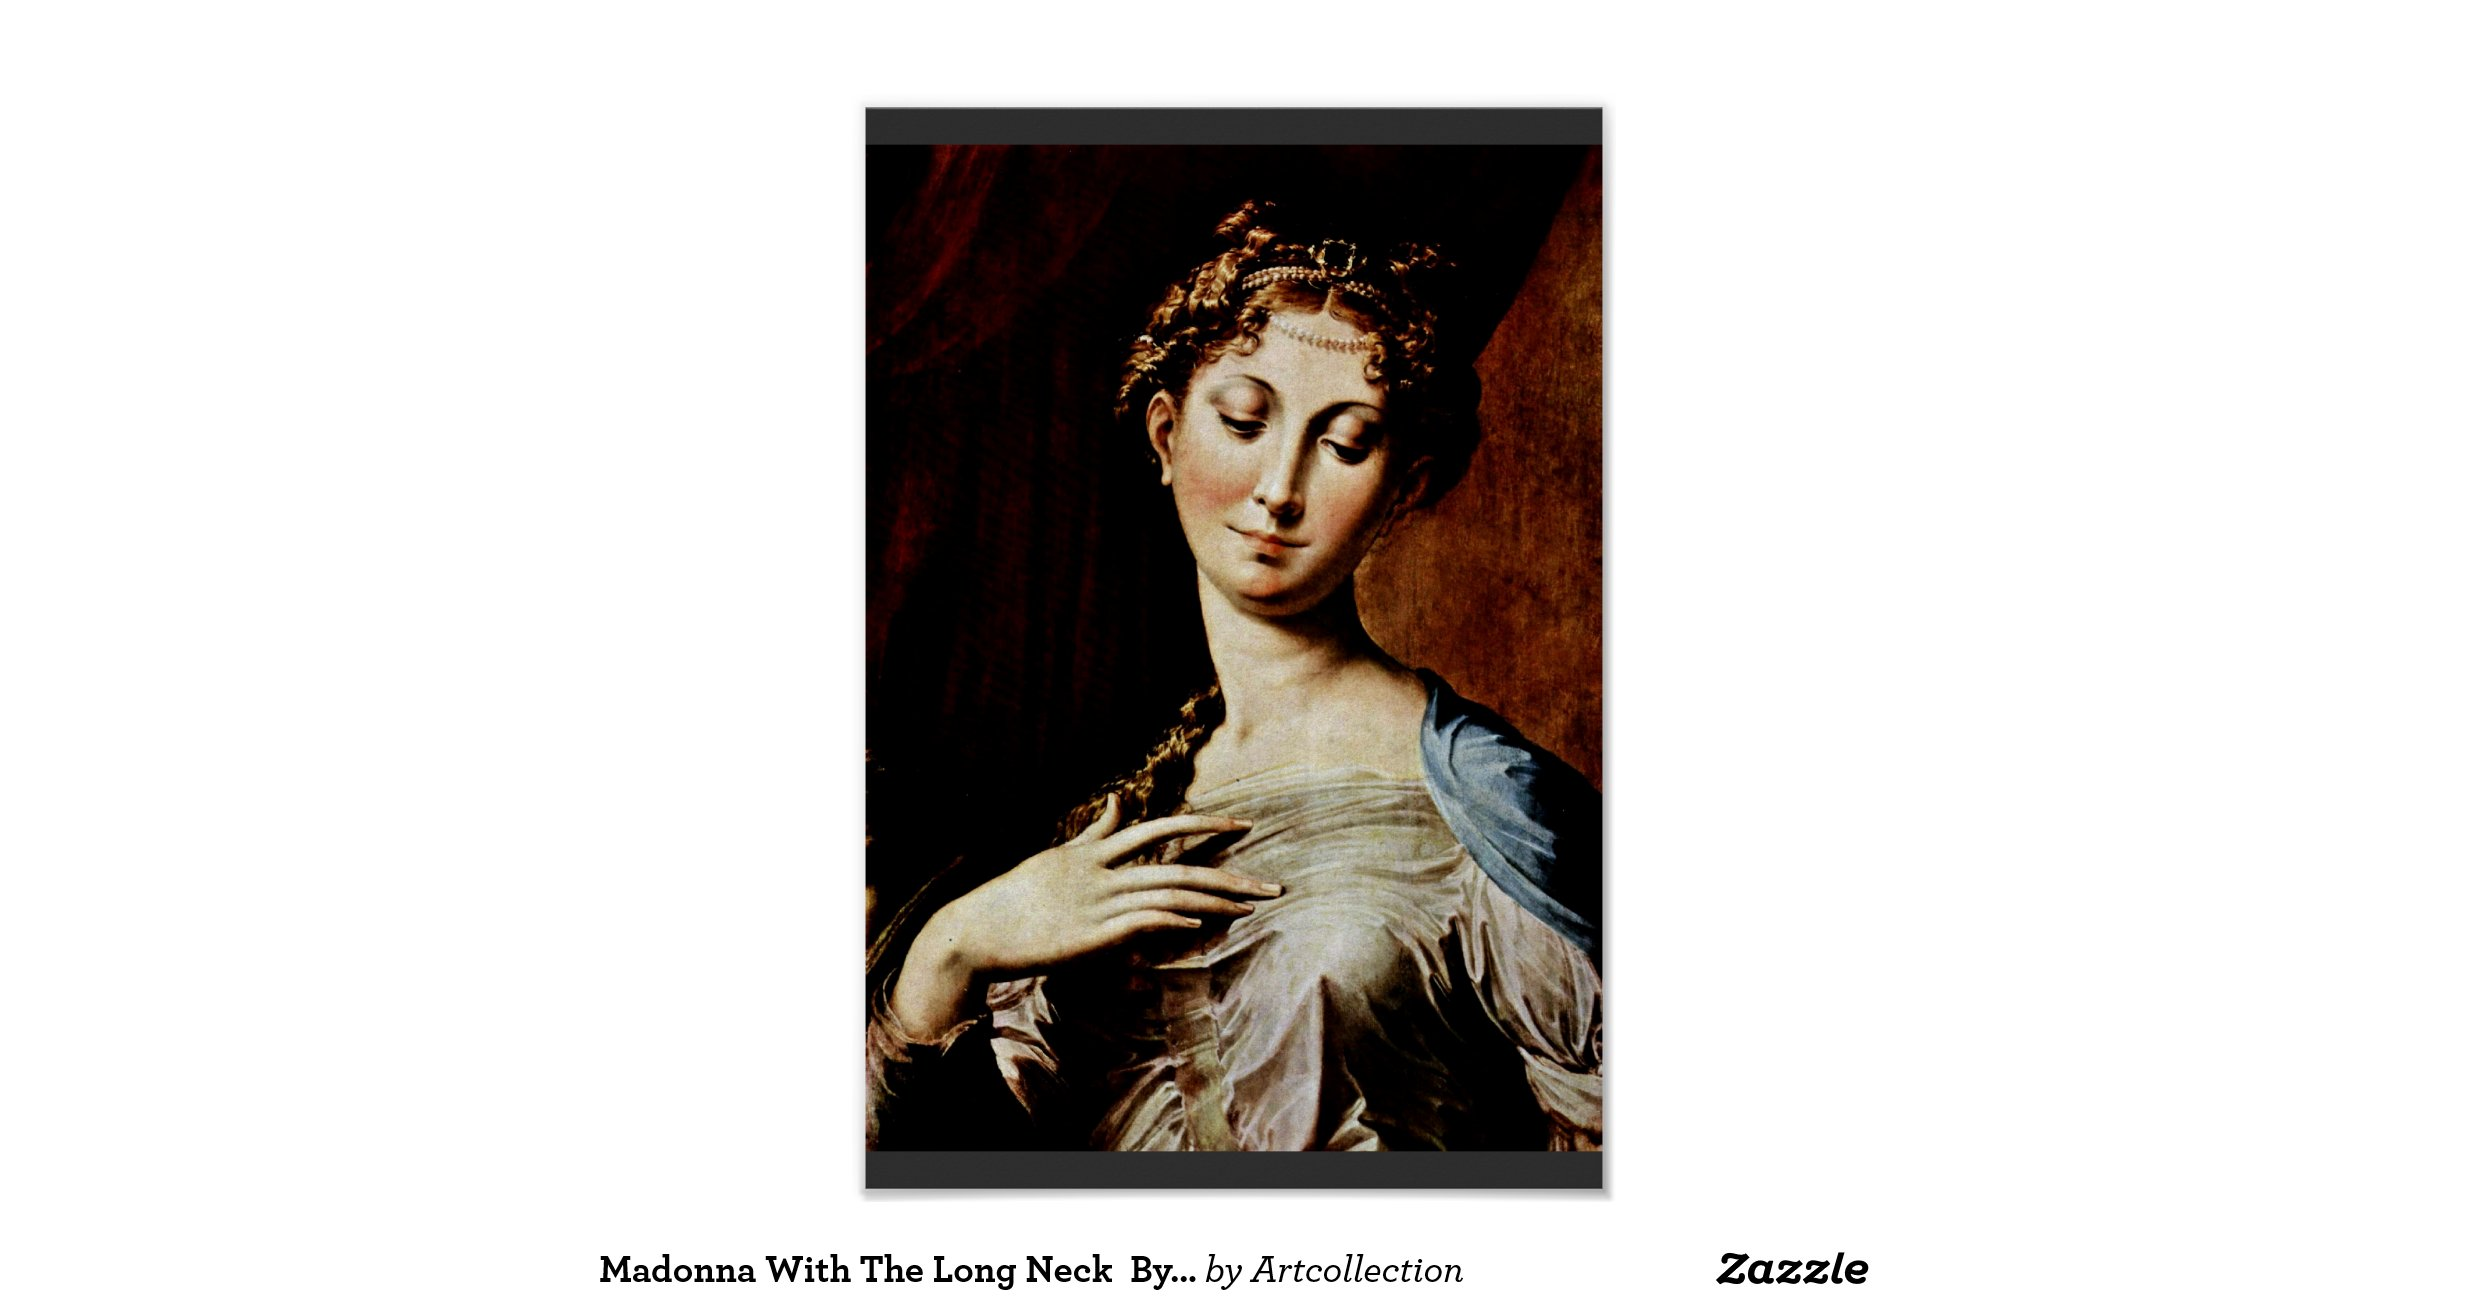 madonna with the long neck